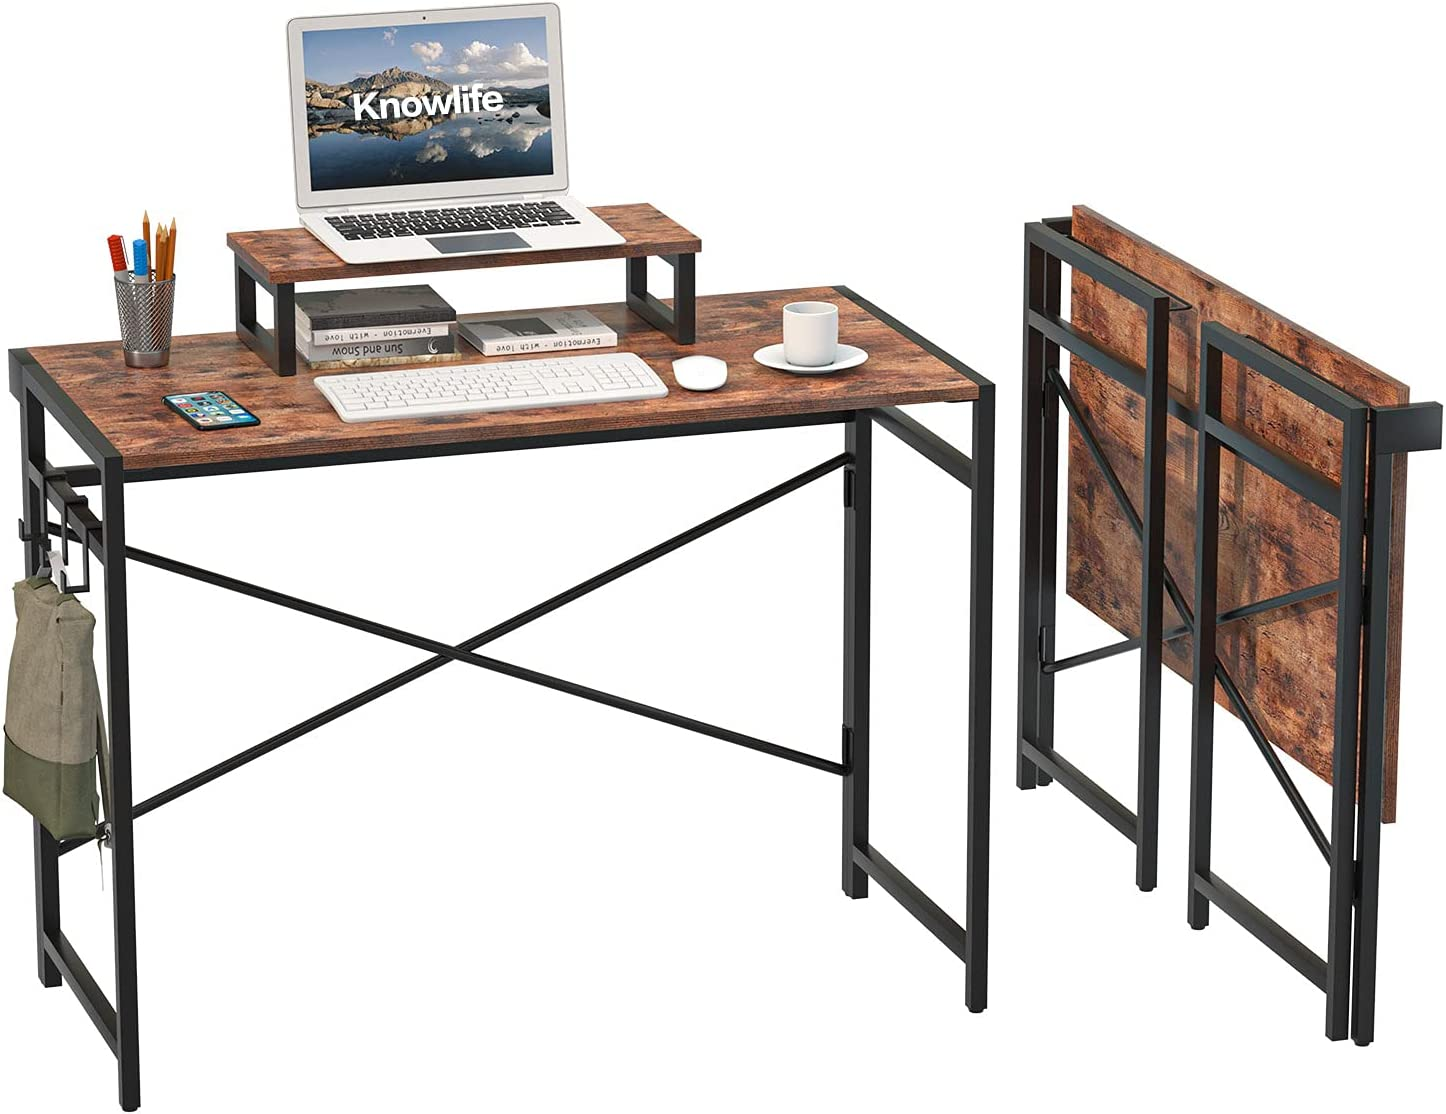 """Knowlife Small Folding Computer Desk No Assembly Required Writing Study Desk, 39"""" Collapsible Workstation with Monitor Riser and 3 Hooks, Space Saving Simple Home Office Desk for Small Space Brown"""